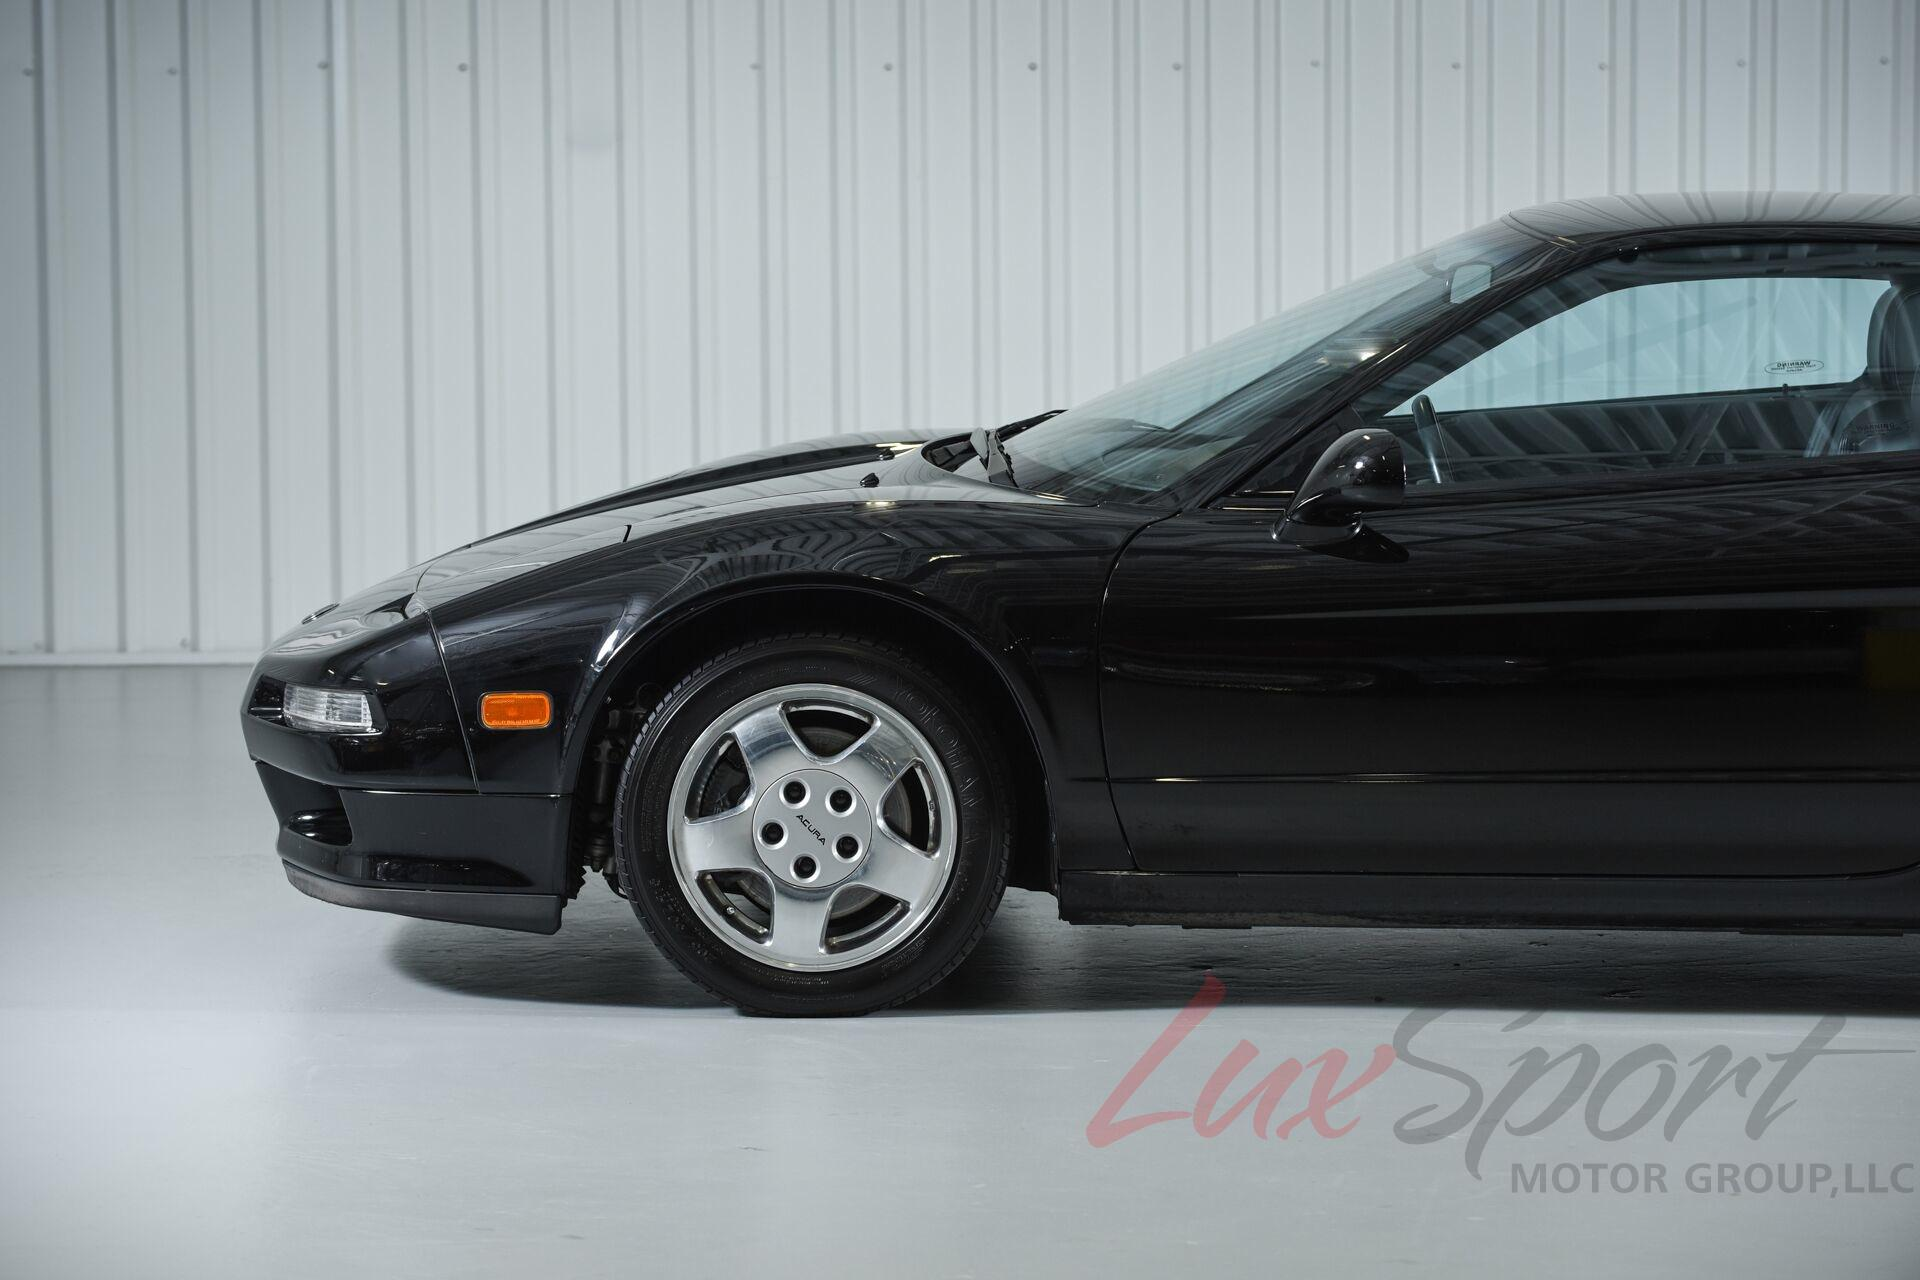 auction carscoops barely gallery formula a have nsx photo used yourself acura red